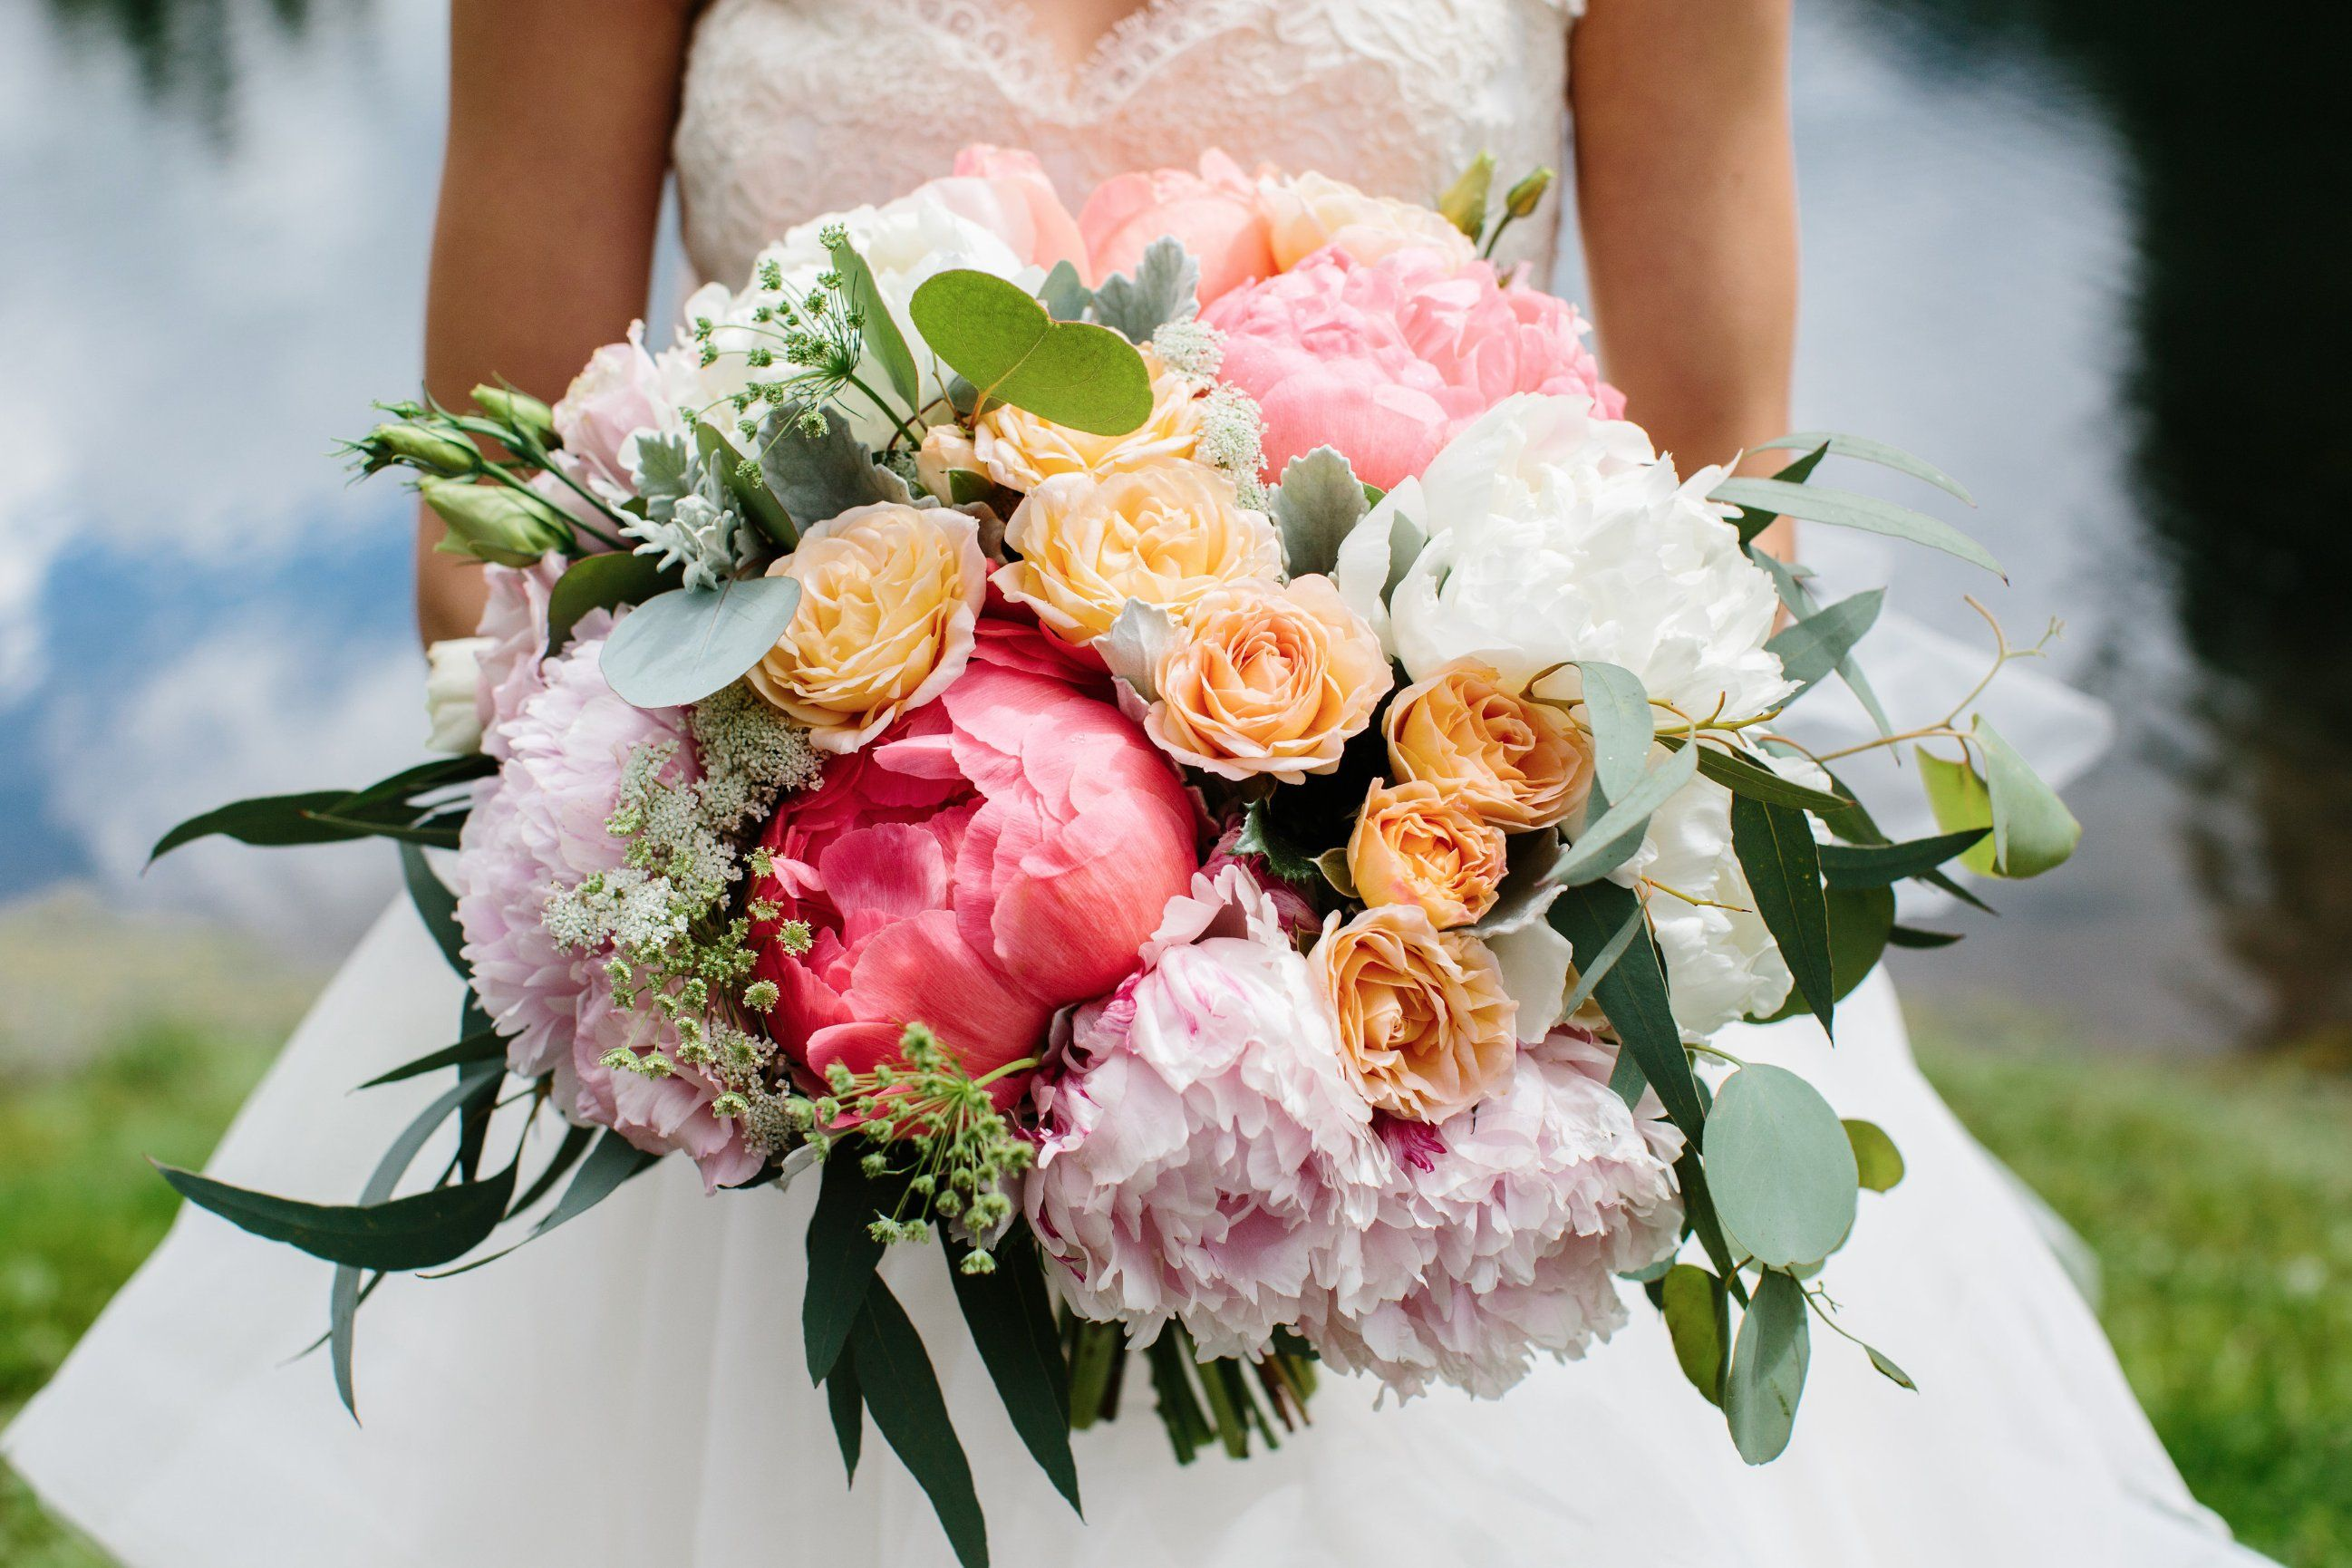 Flowers by Janie | Wedding Bouquets and Boutonnieres | Pinterest ...